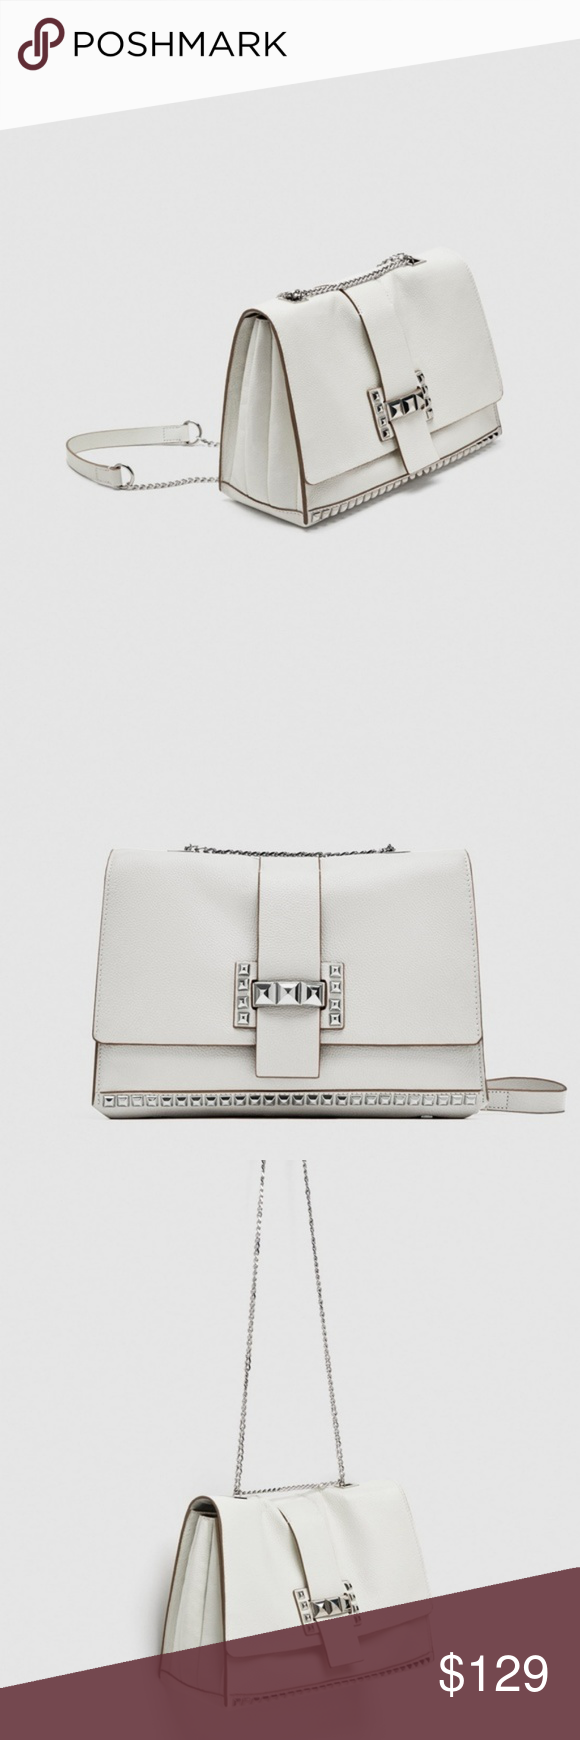 Zara Studded Leather Crossbody White Silver Bag Brand new with tag  attached, Authentic Zara. d39c830e94